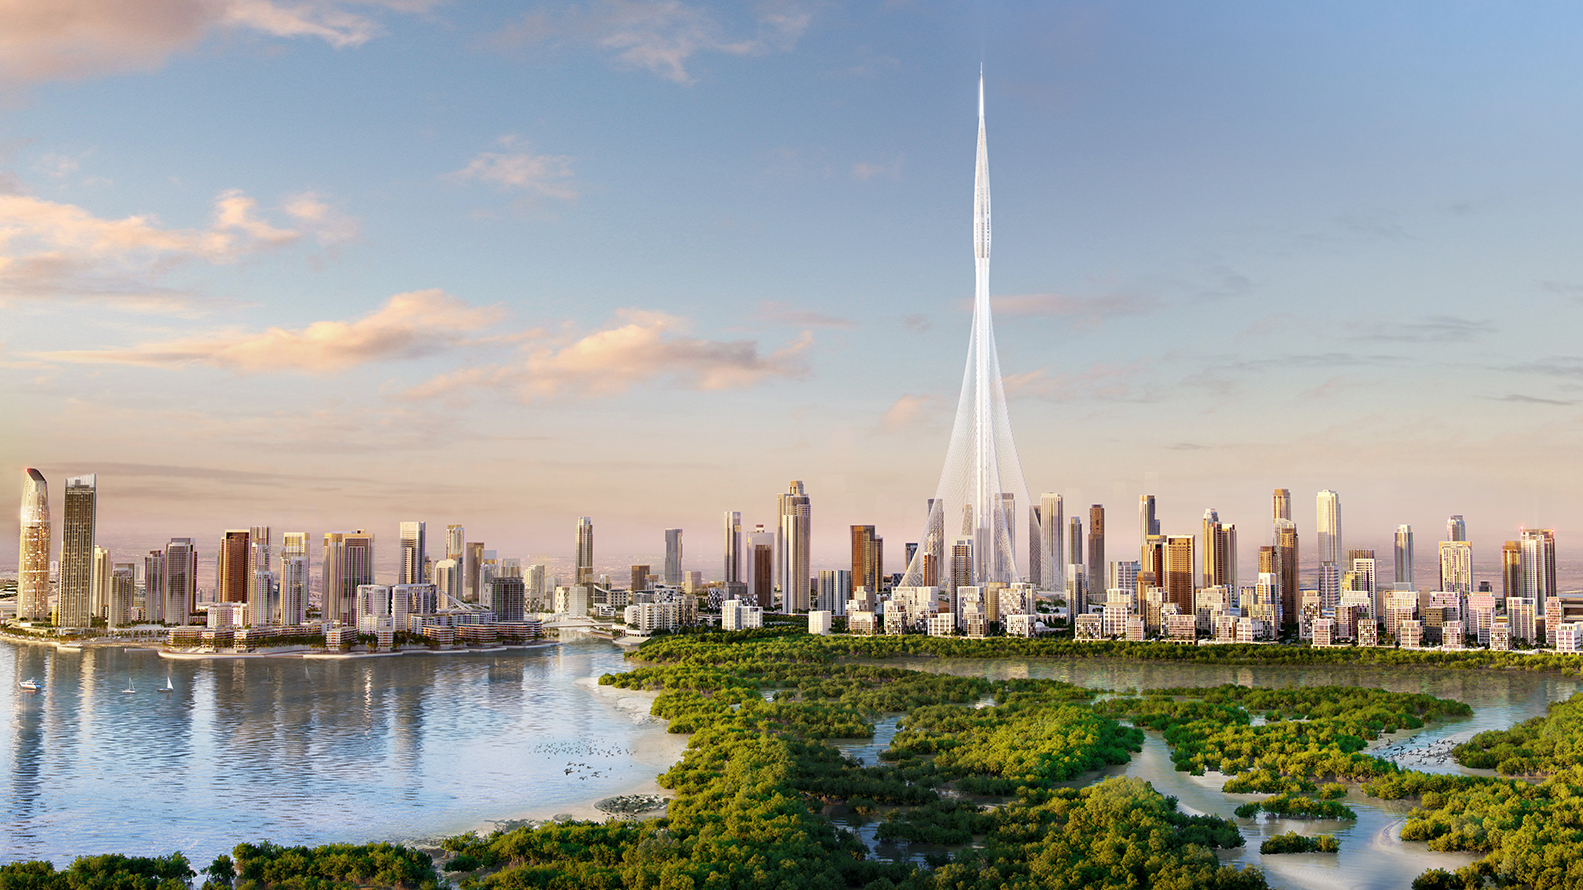 Dubai Creek Tower